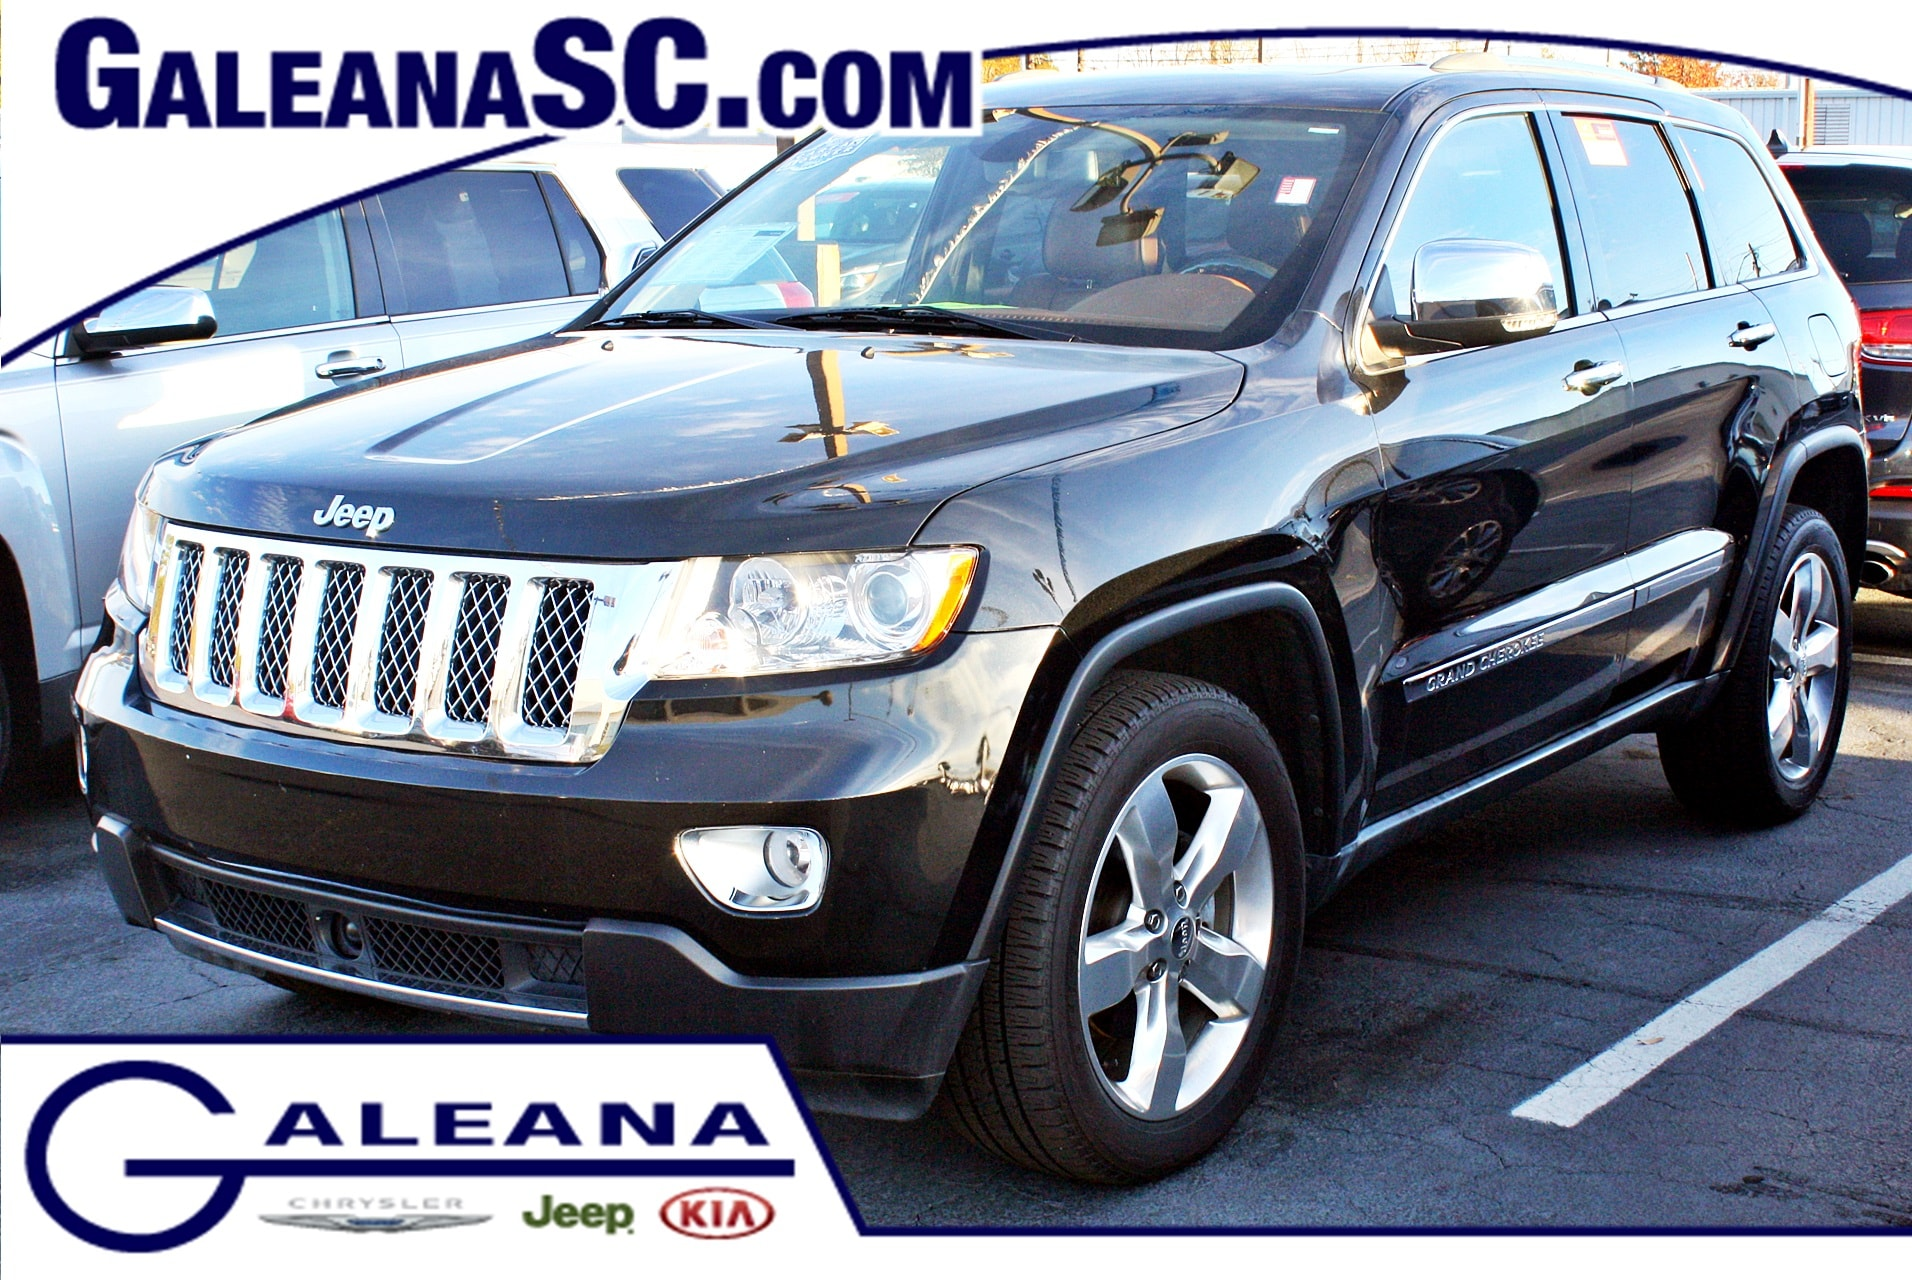 certified used 2012 jeep grand cherokee overland summit in columbia sc galeana kia vin. Black Bedroom Furniture Sets. Home Design Ideas